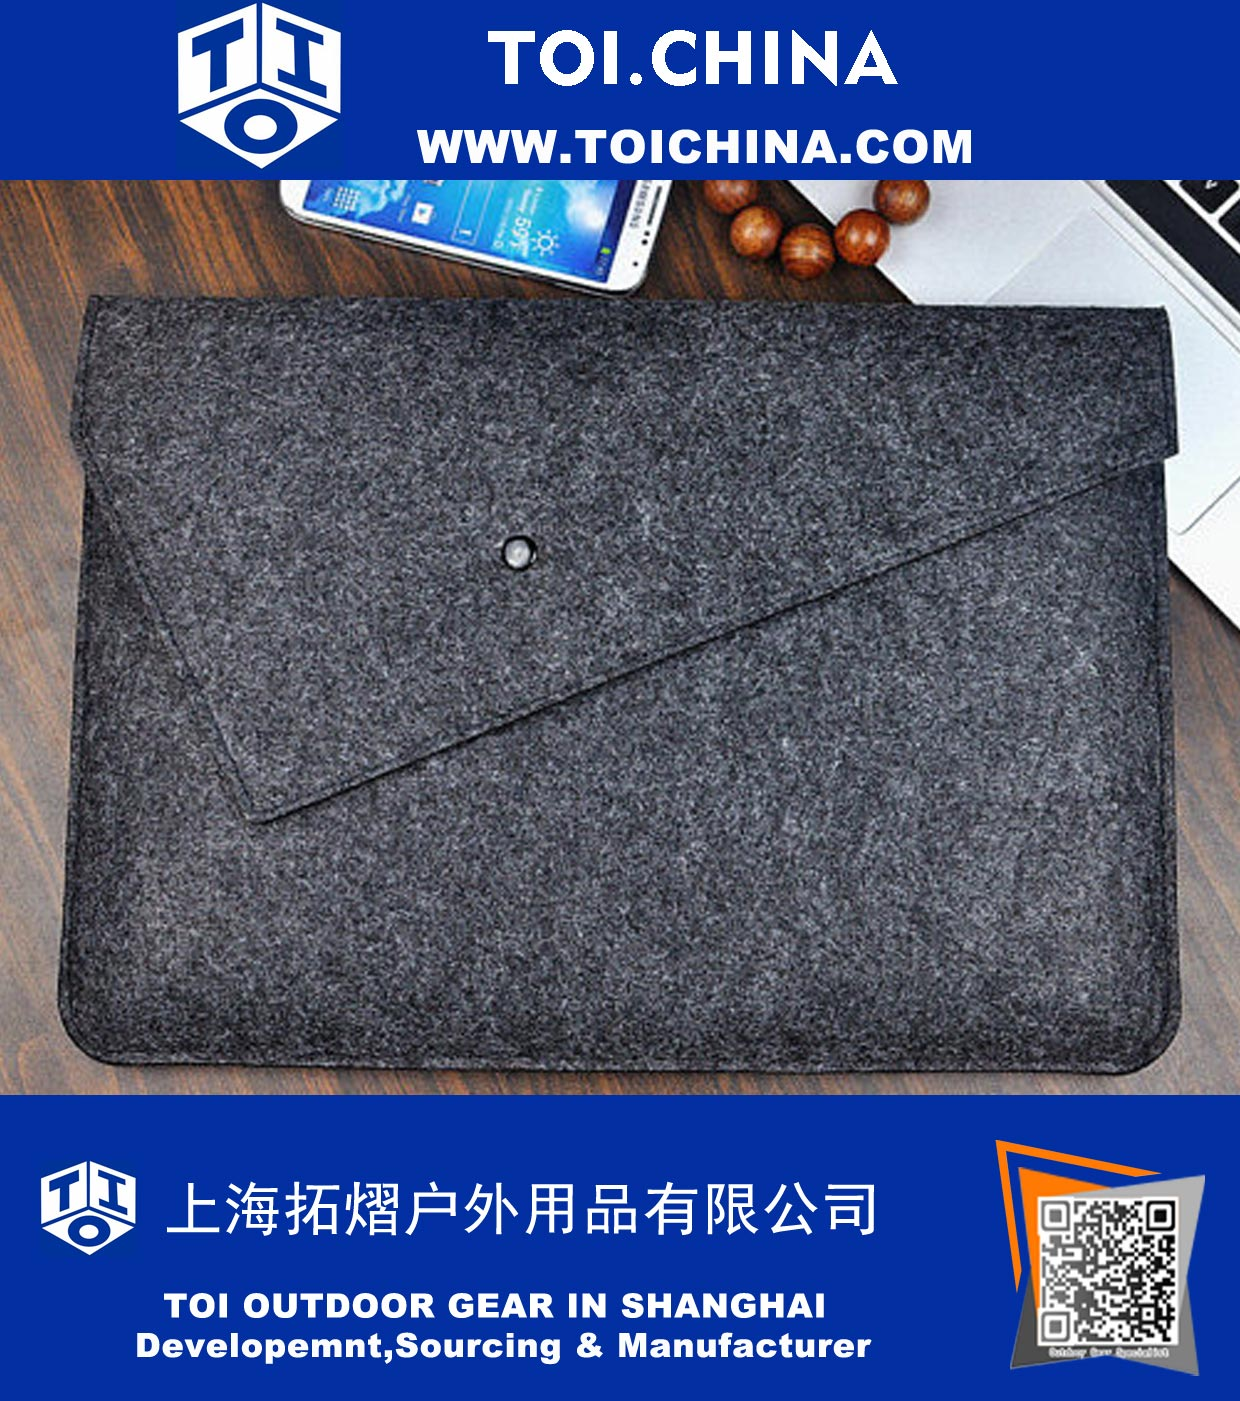 Christmas Gift Felt Laptop Cover Dell Laptop Case 13 Inch Laptop Bag 14 Inch Laptop Sleeve Felt Bag Custom Laptop Bag Zt Ef188 Portfolio Case Stationery And Office Supplies China Manufacturer Shanghai Toi